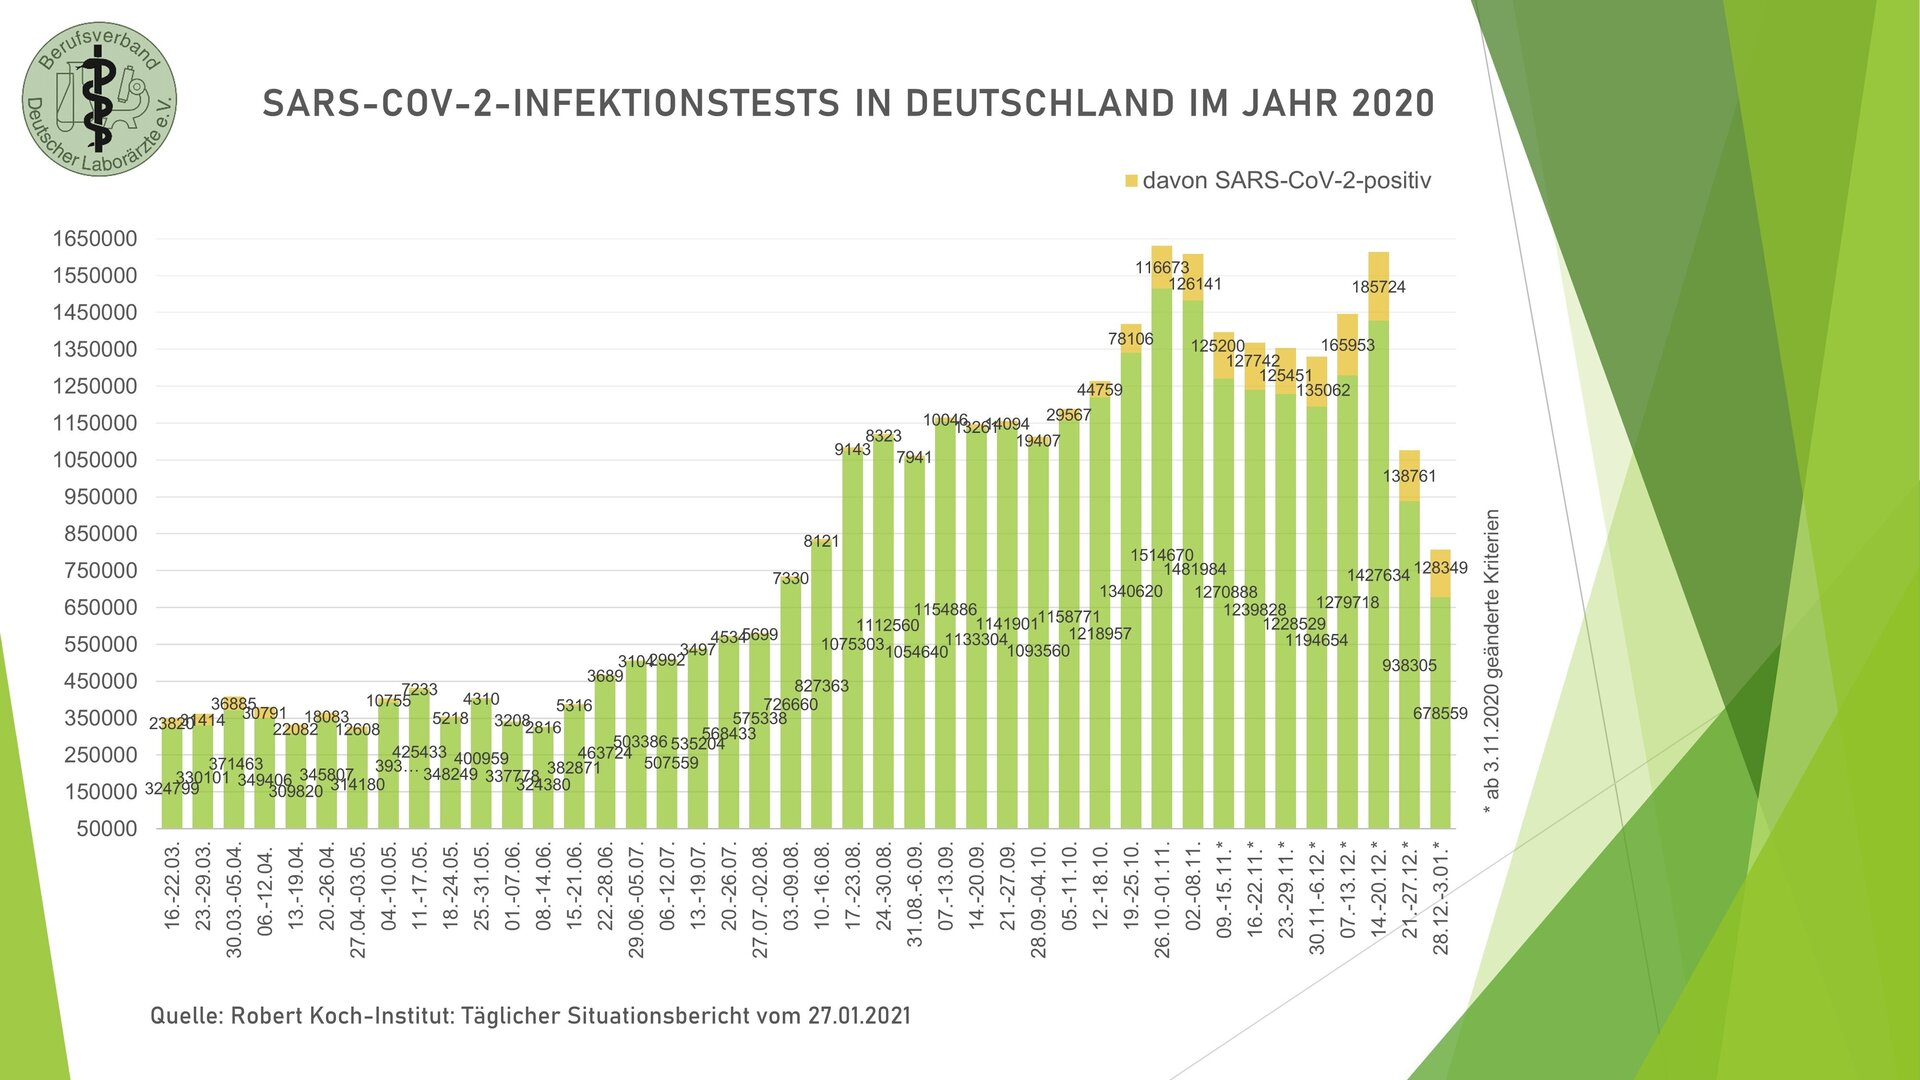 SARS-CoV-2-Infektionstests 2020